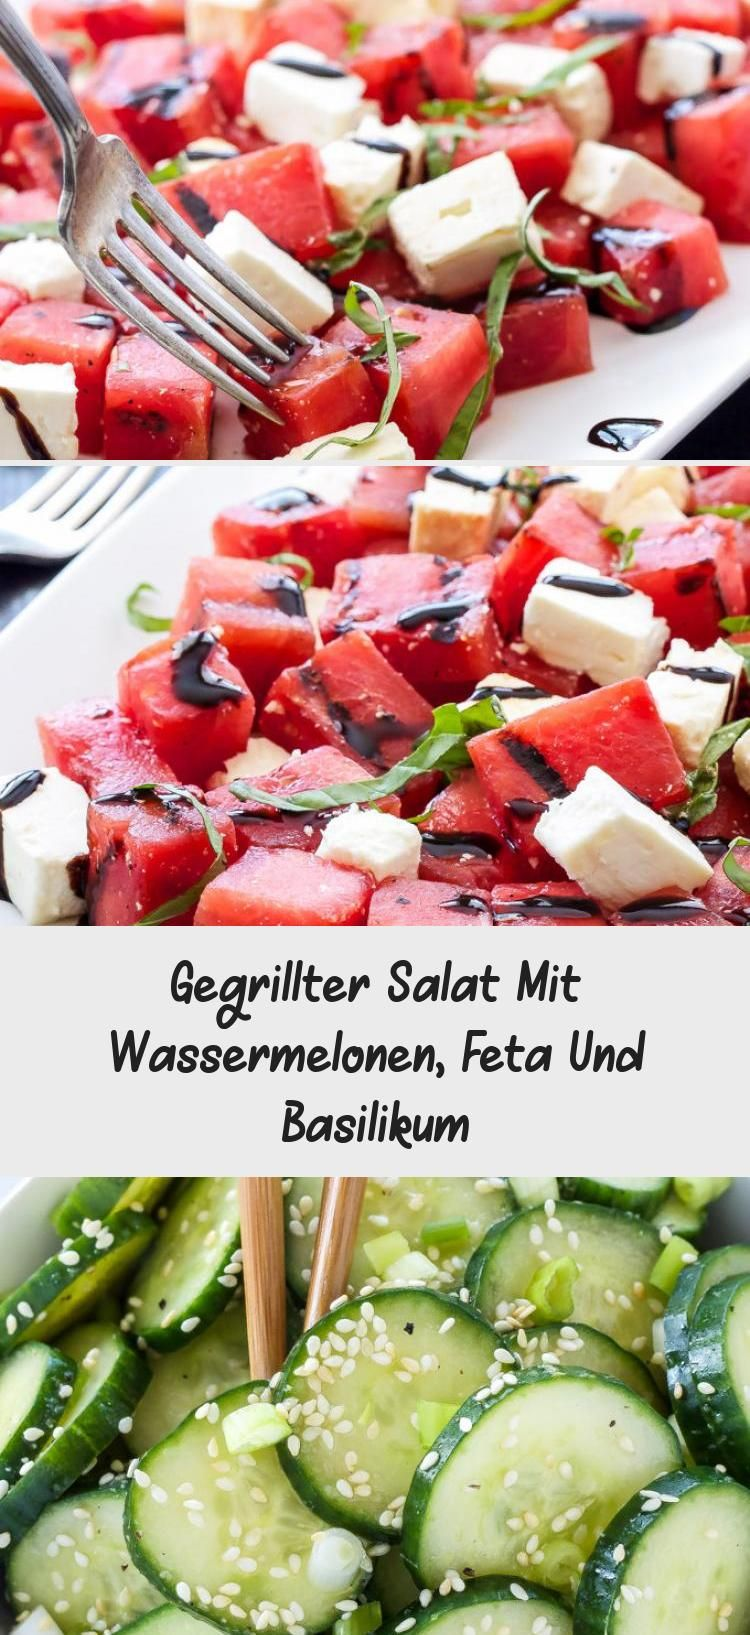 Photo of Grilled salad with watermelons, feta and basil